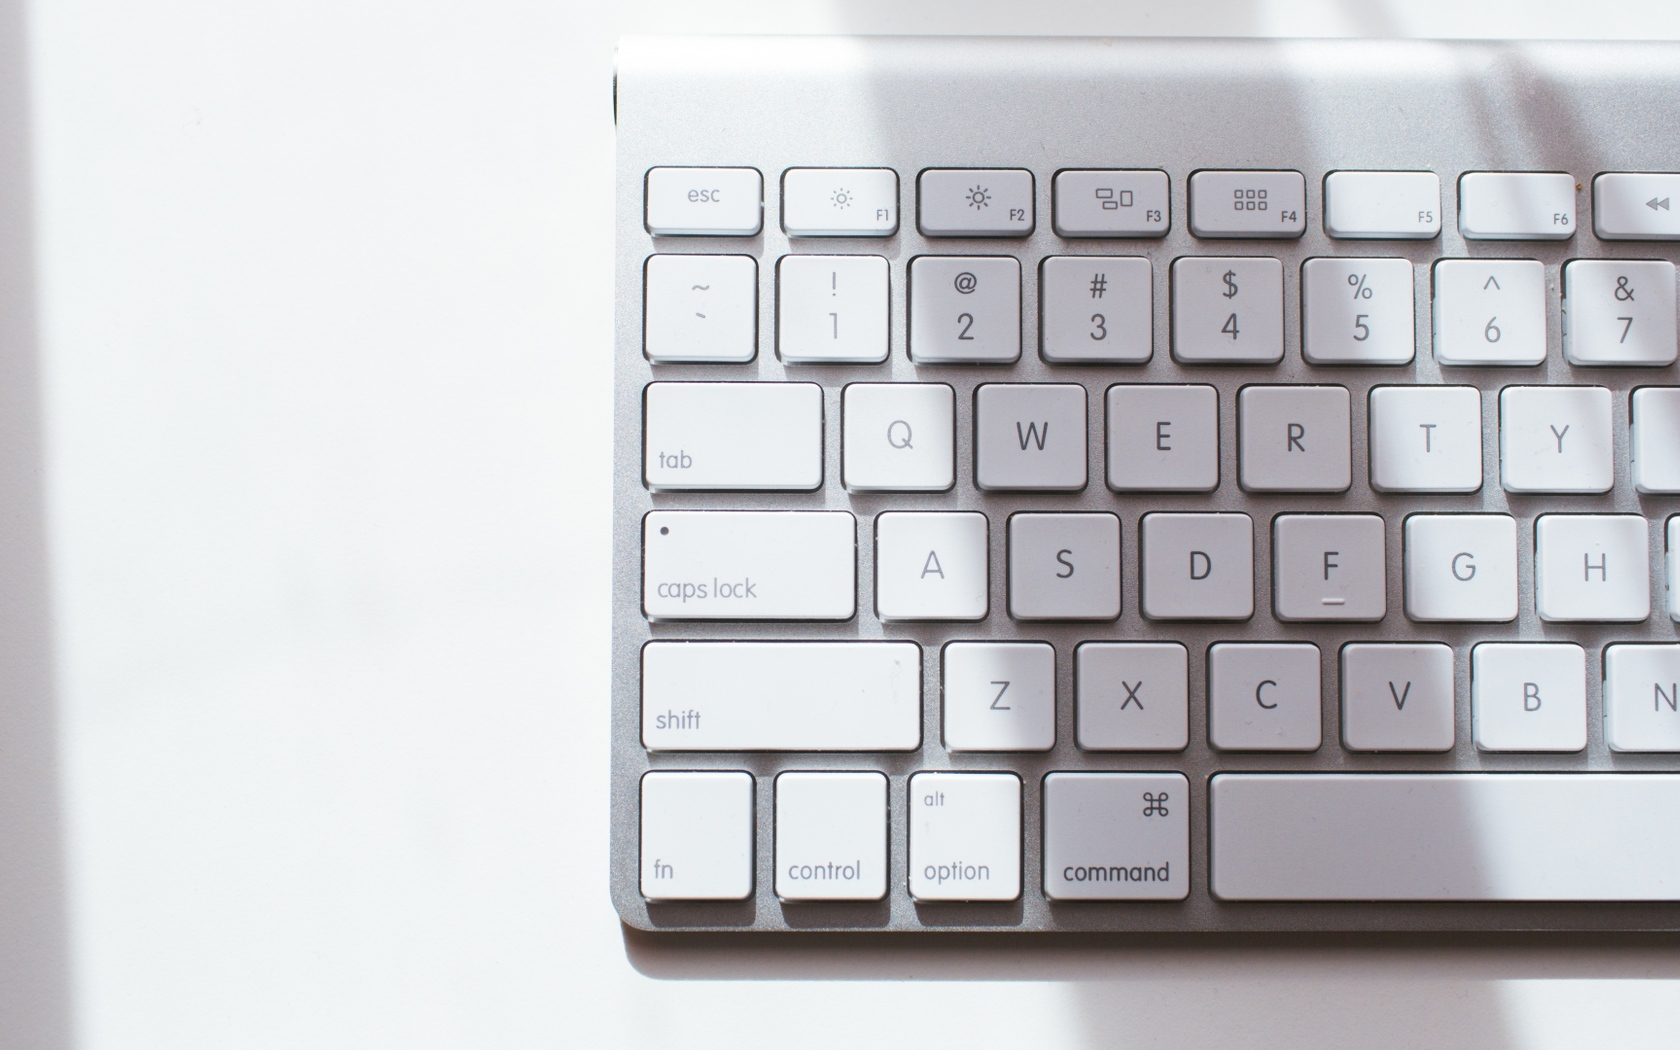 apple keyboard computer photos wallpaper 66325